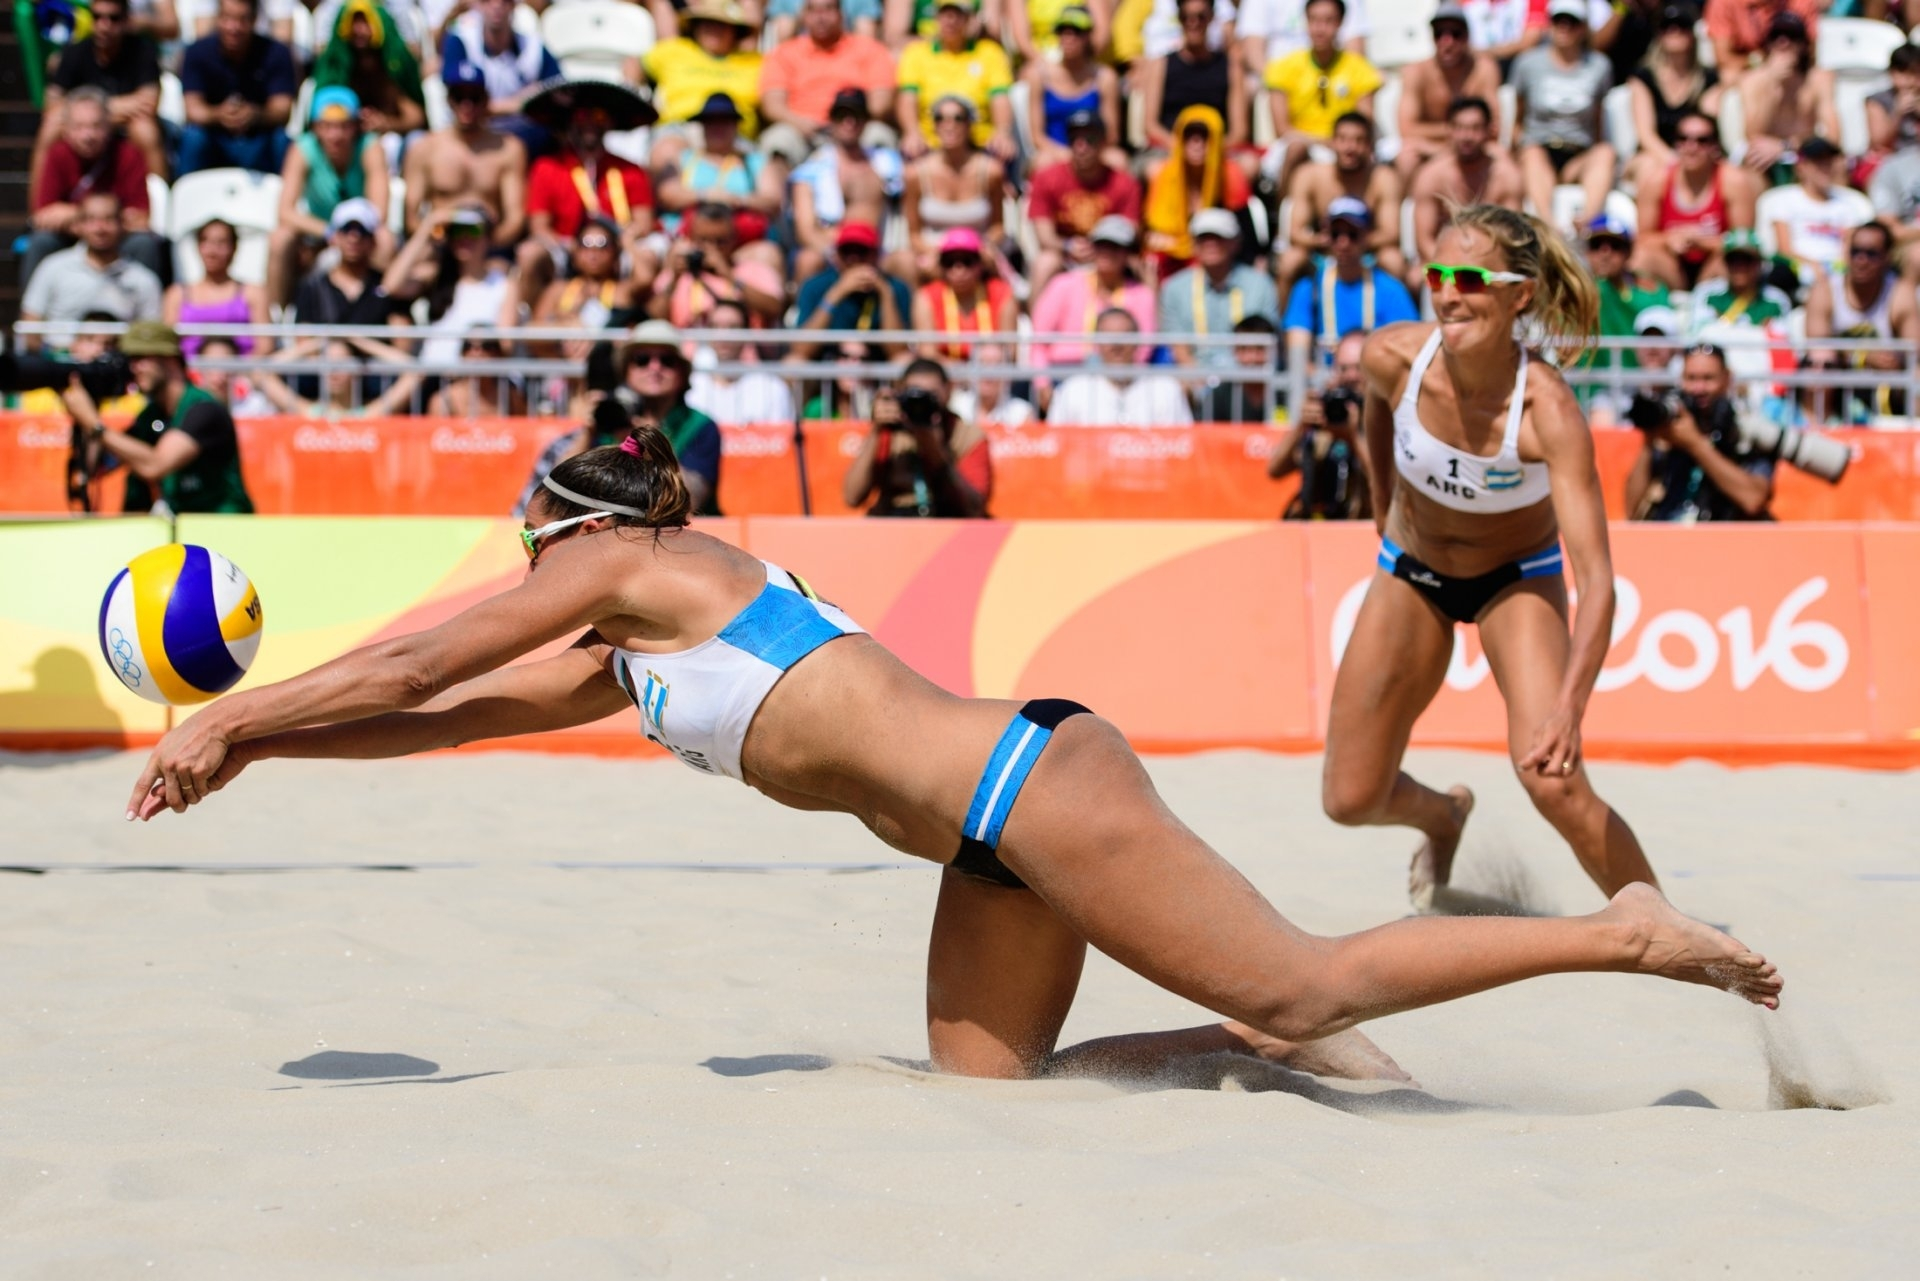 Gallay/Klug in action at the 2016 Rio Olympics